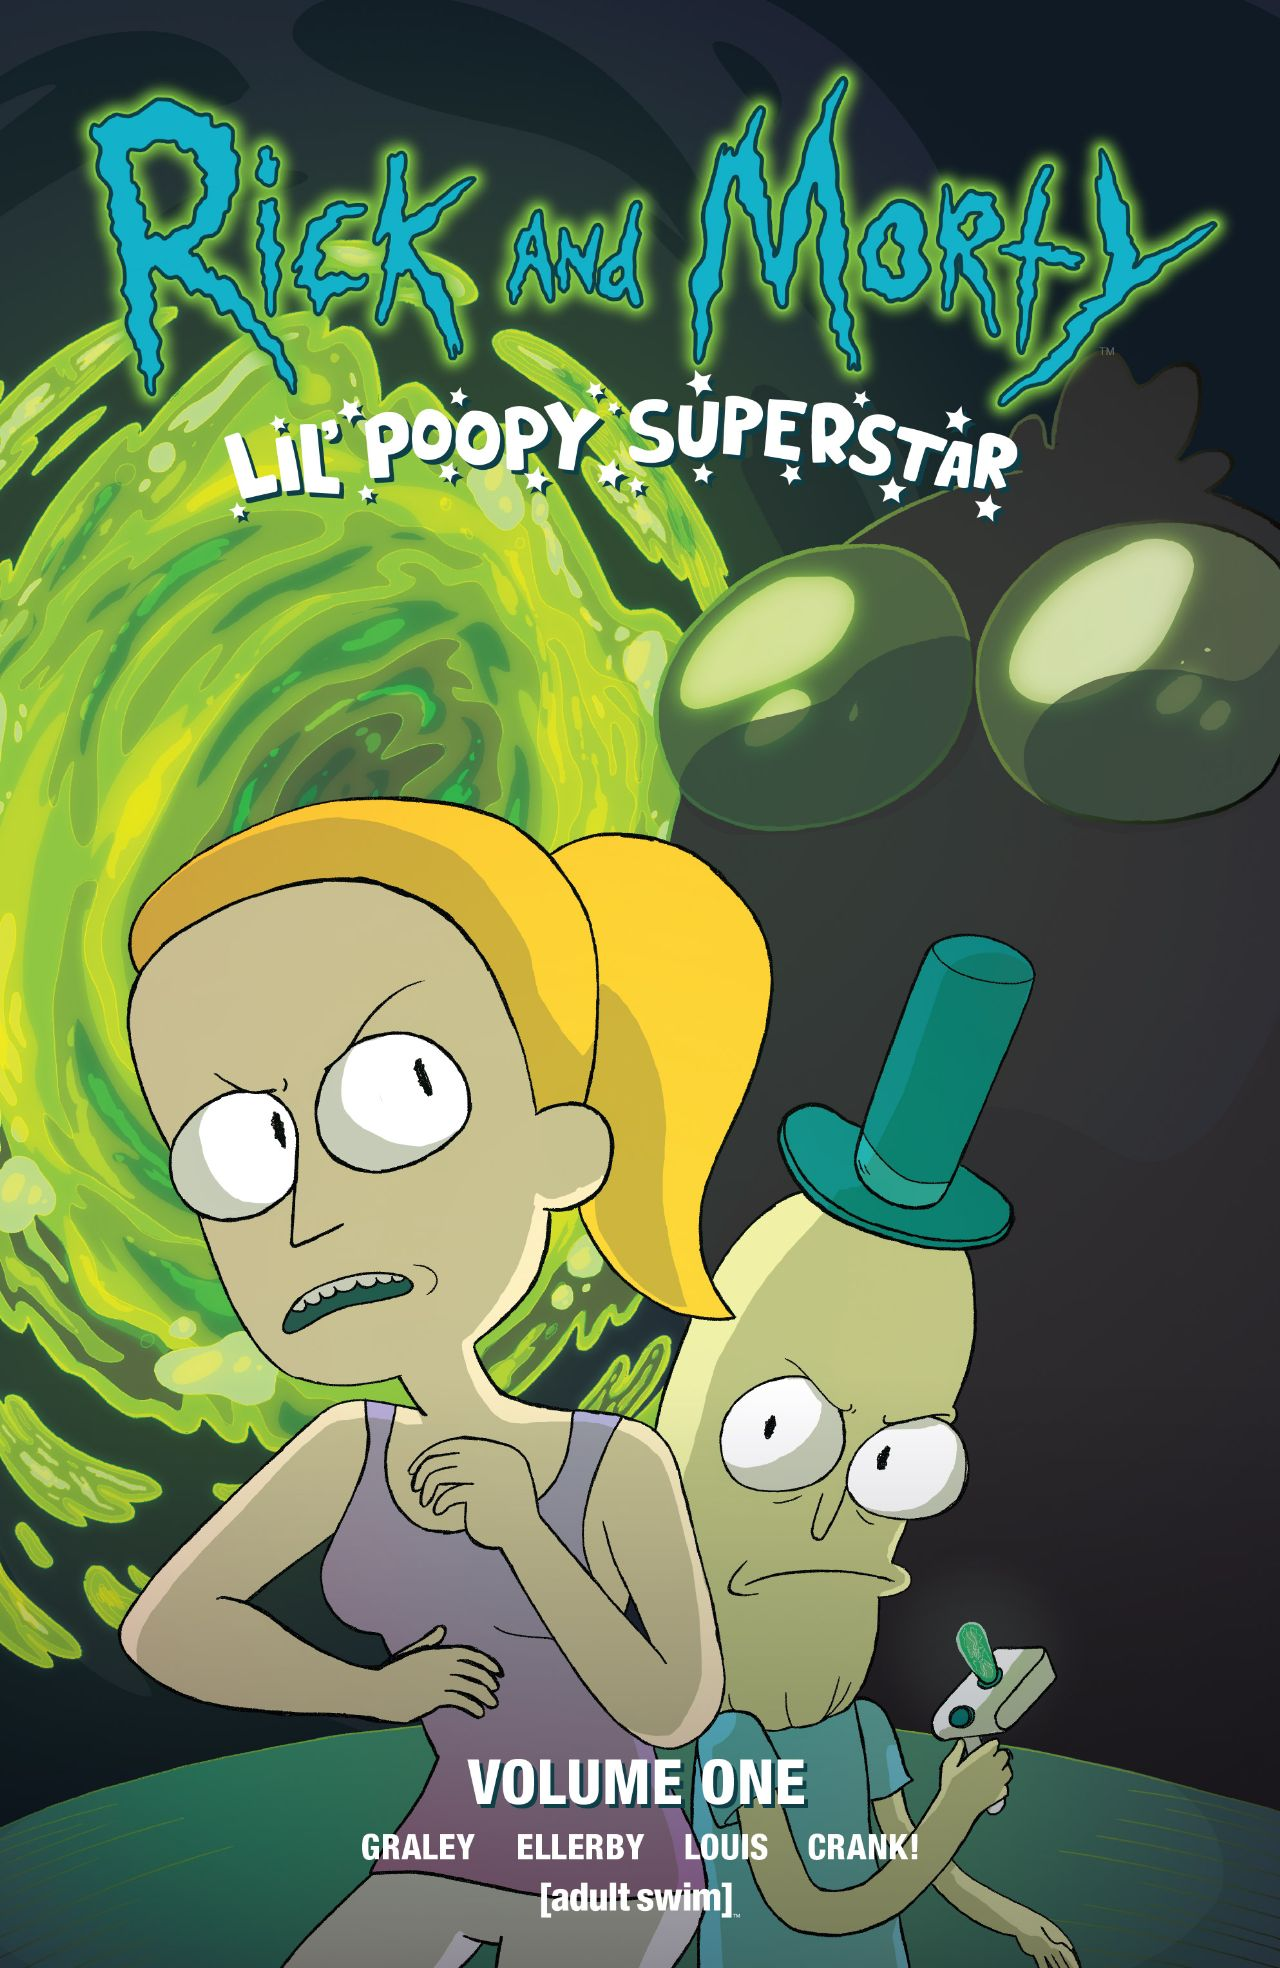 Rick and Morty Lil' Poopy Superstar Volume 1